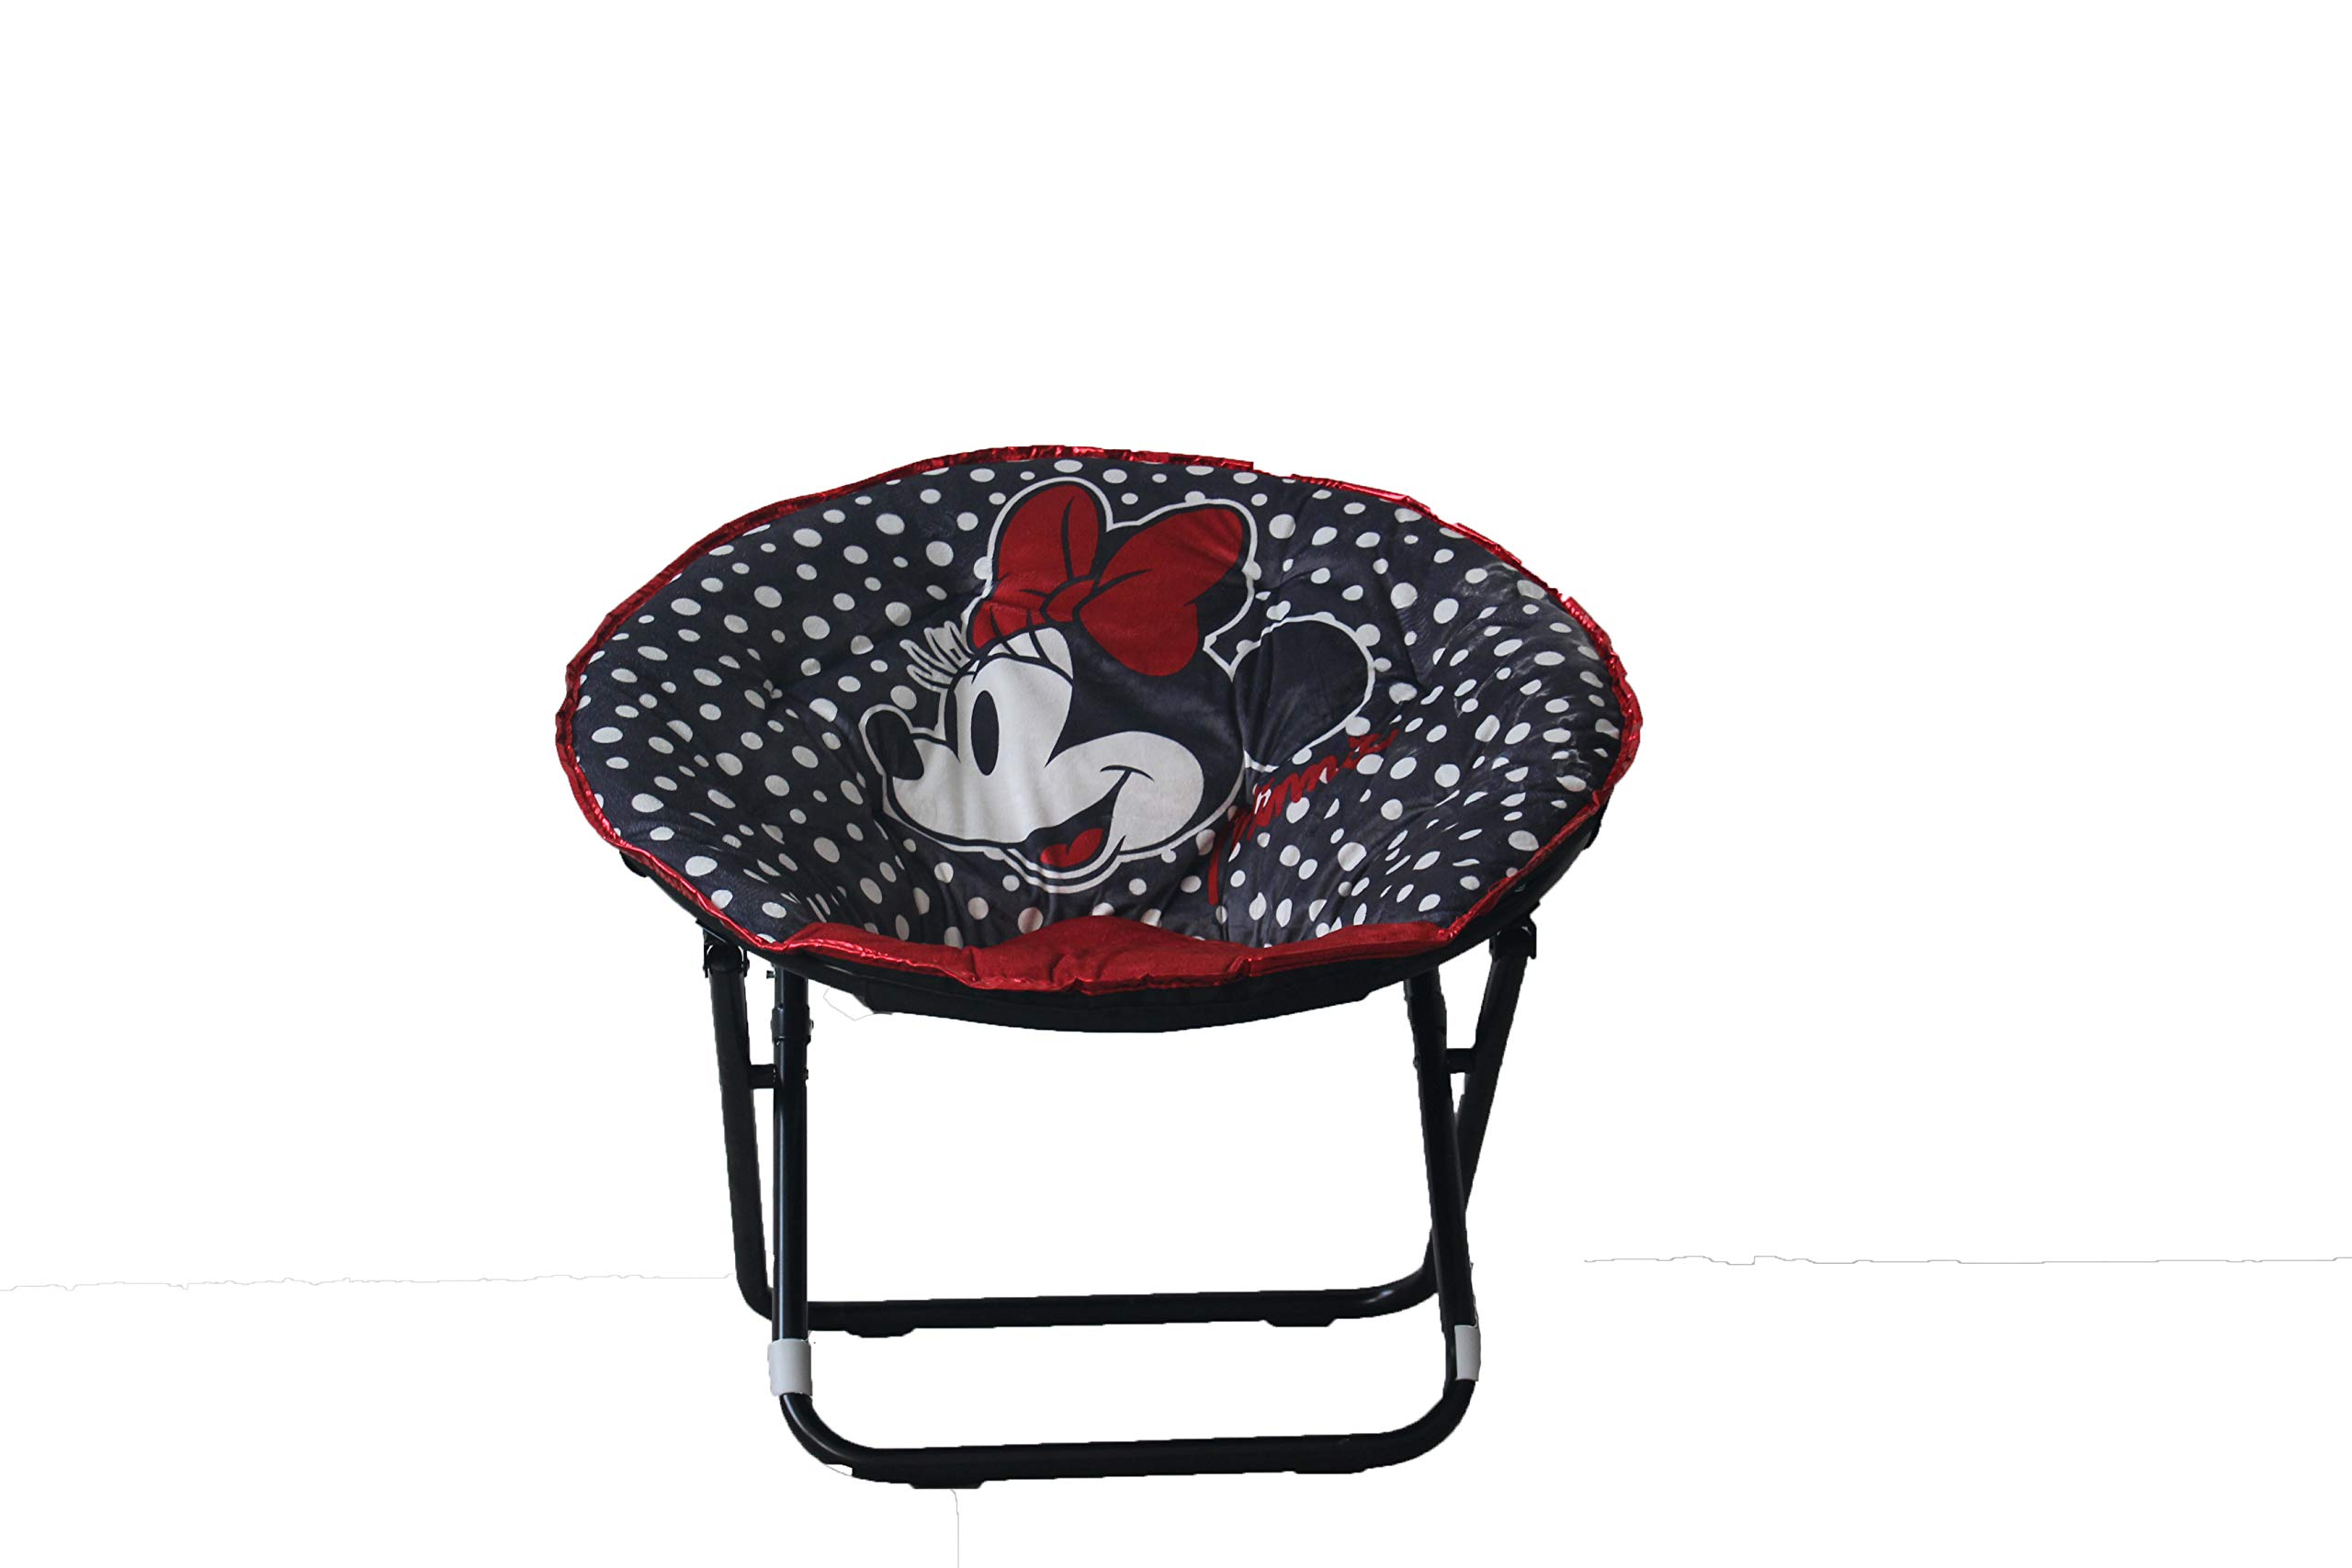 Oversized Minnie Mouse Saucer Chair by Disney